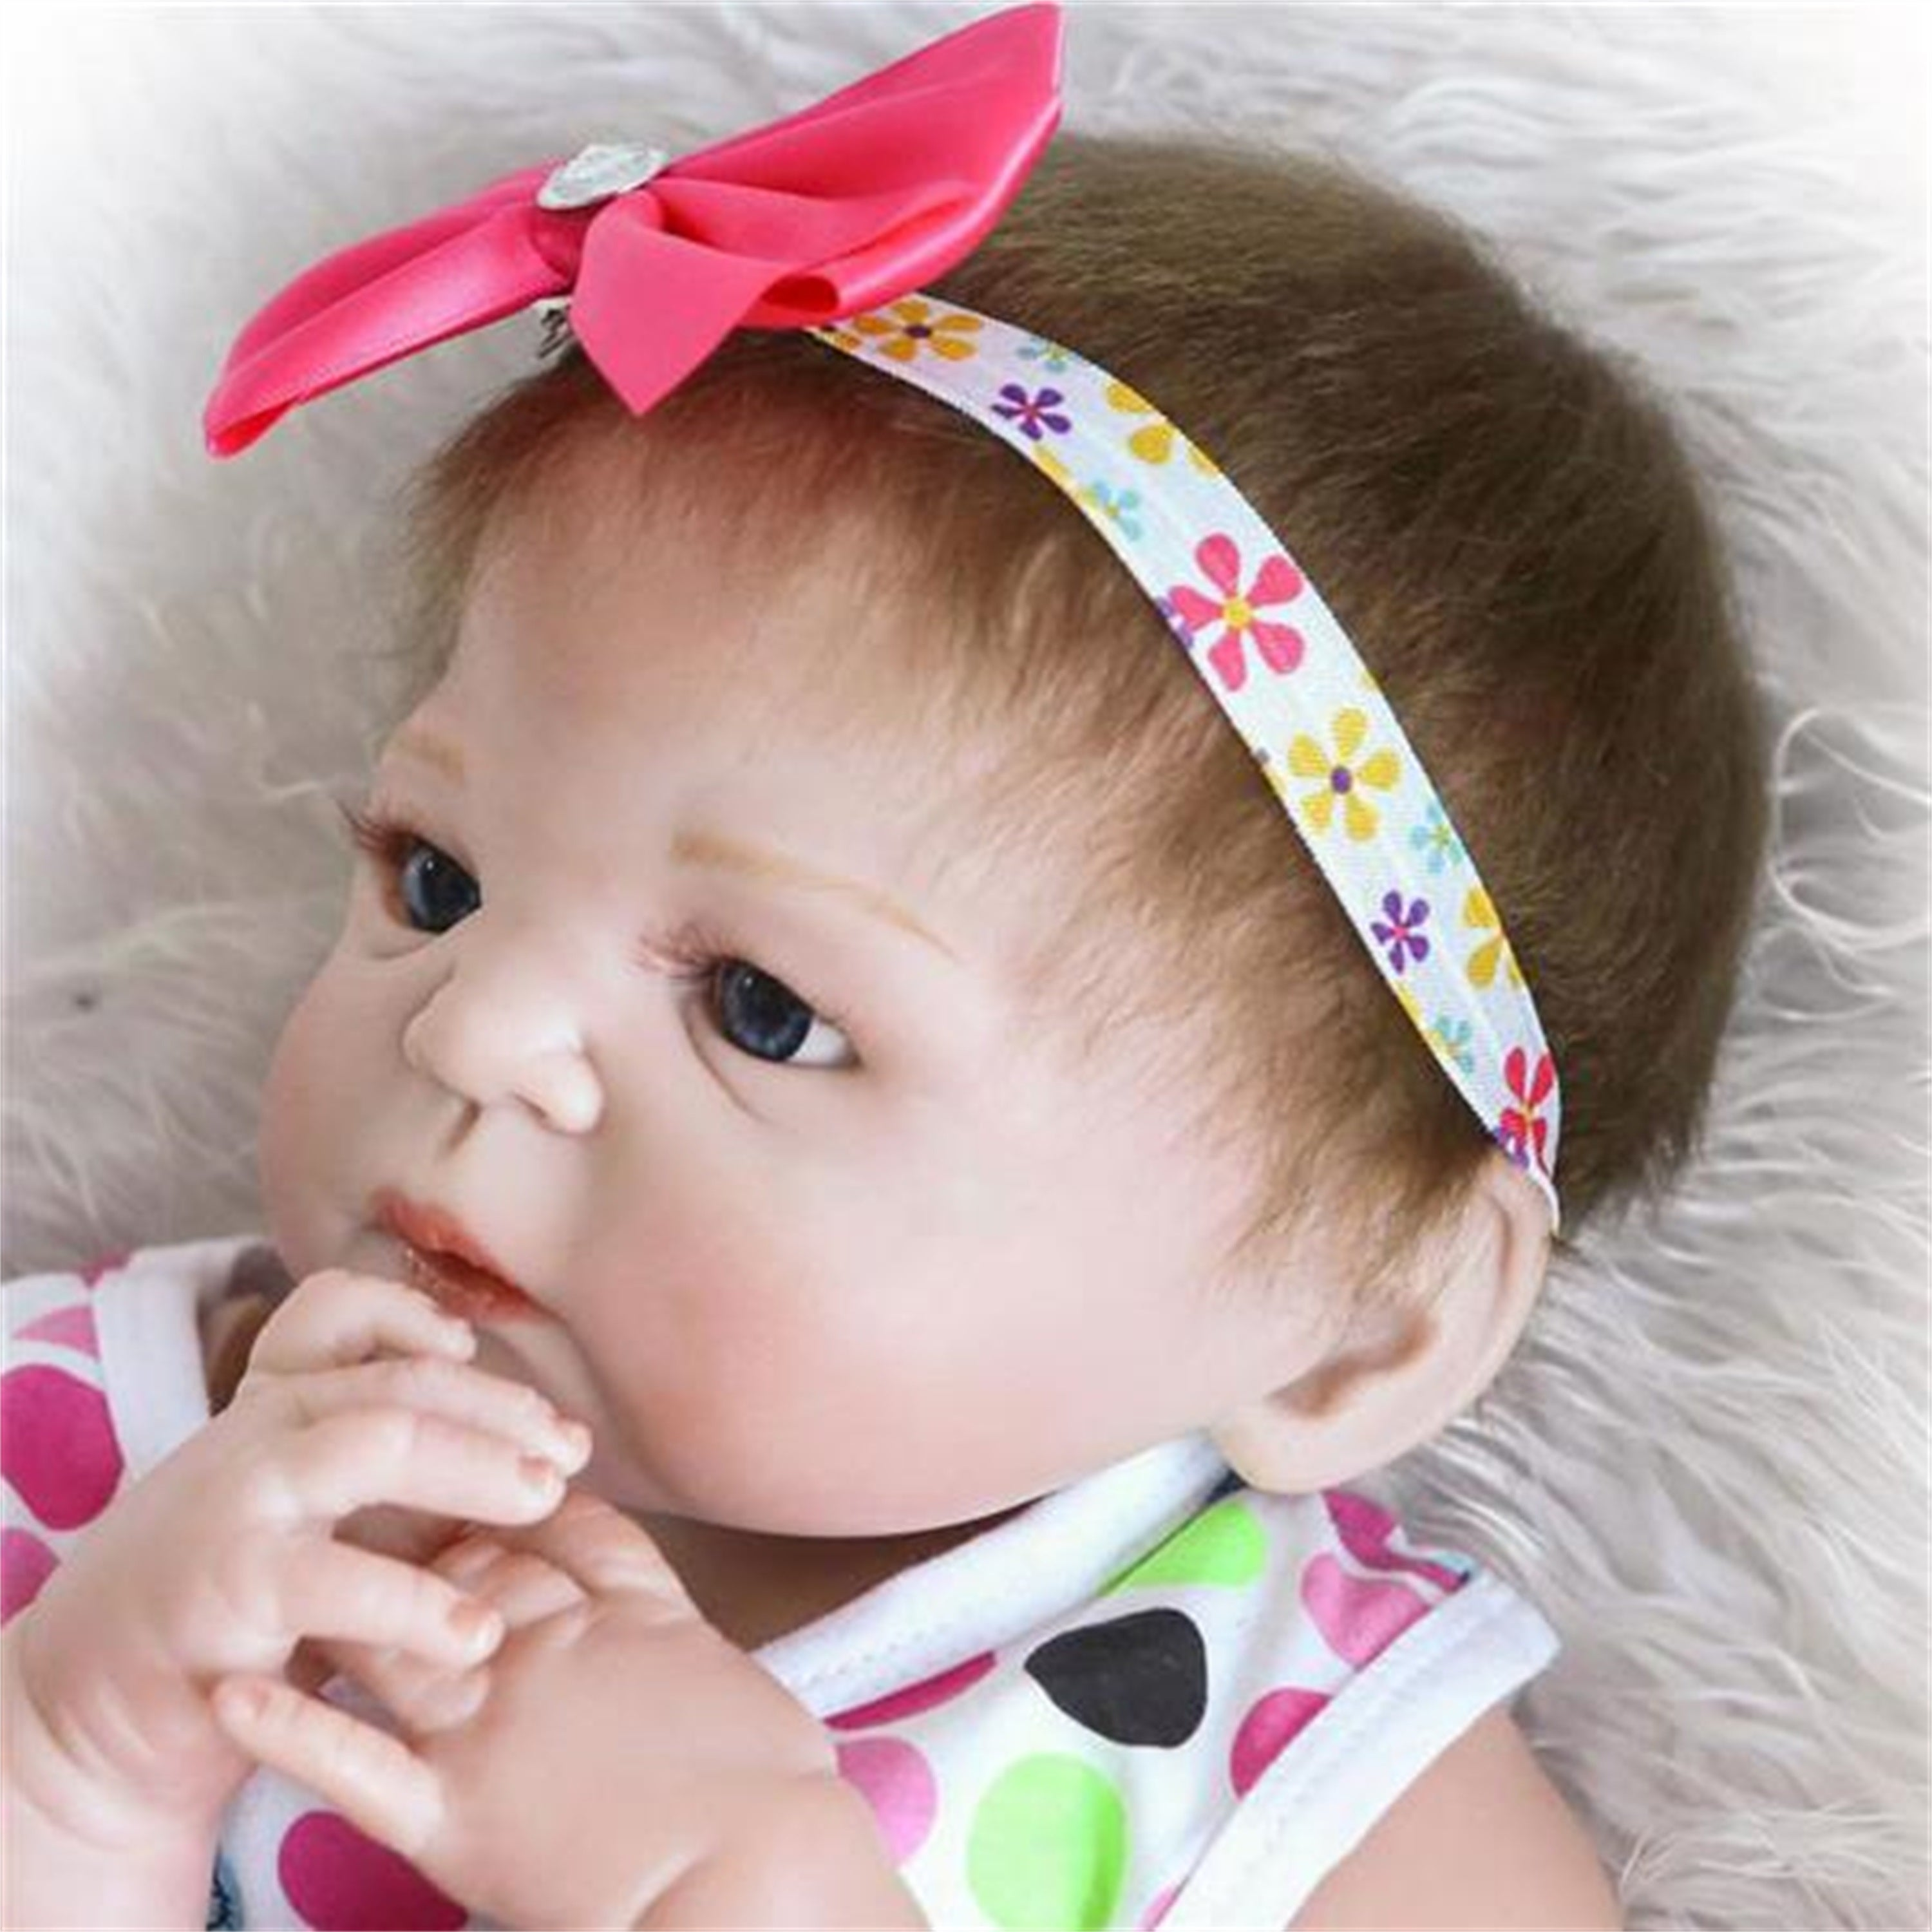 Shop 23 Beautiful Full Simulation Silicone Baby Girl Reborn Baby Doll 7 9 X 10 10 Overstock 31311799